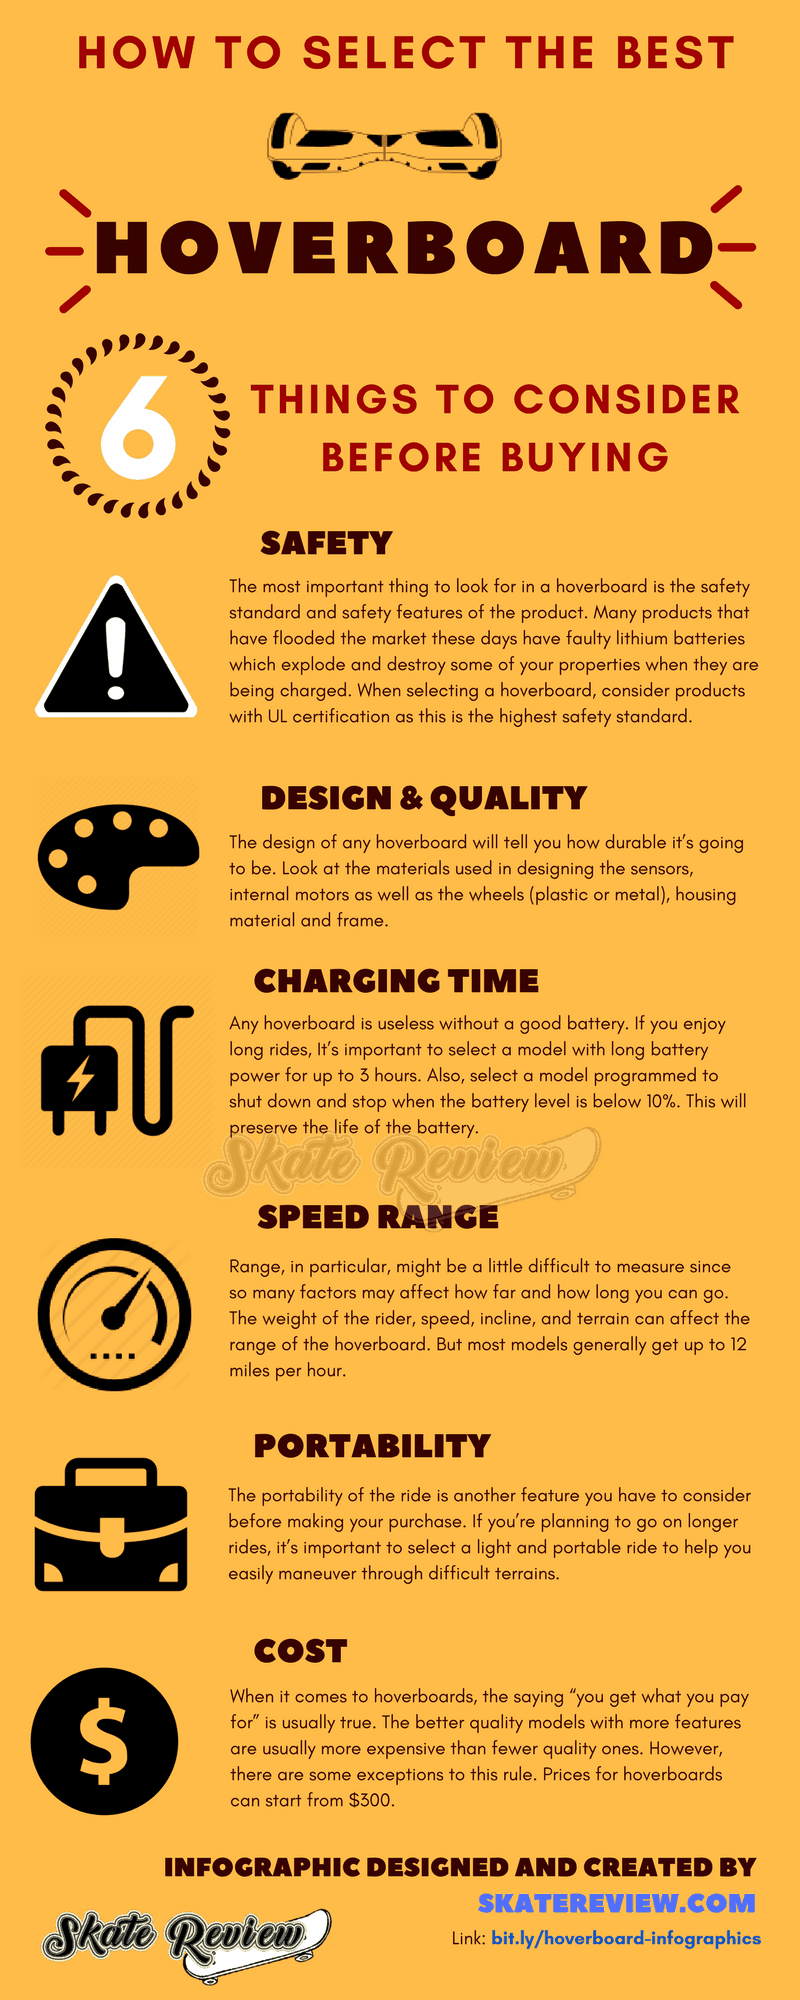 hoverboard infographics, hoverboard buying guide, self balancing scooter infographic and buying guide